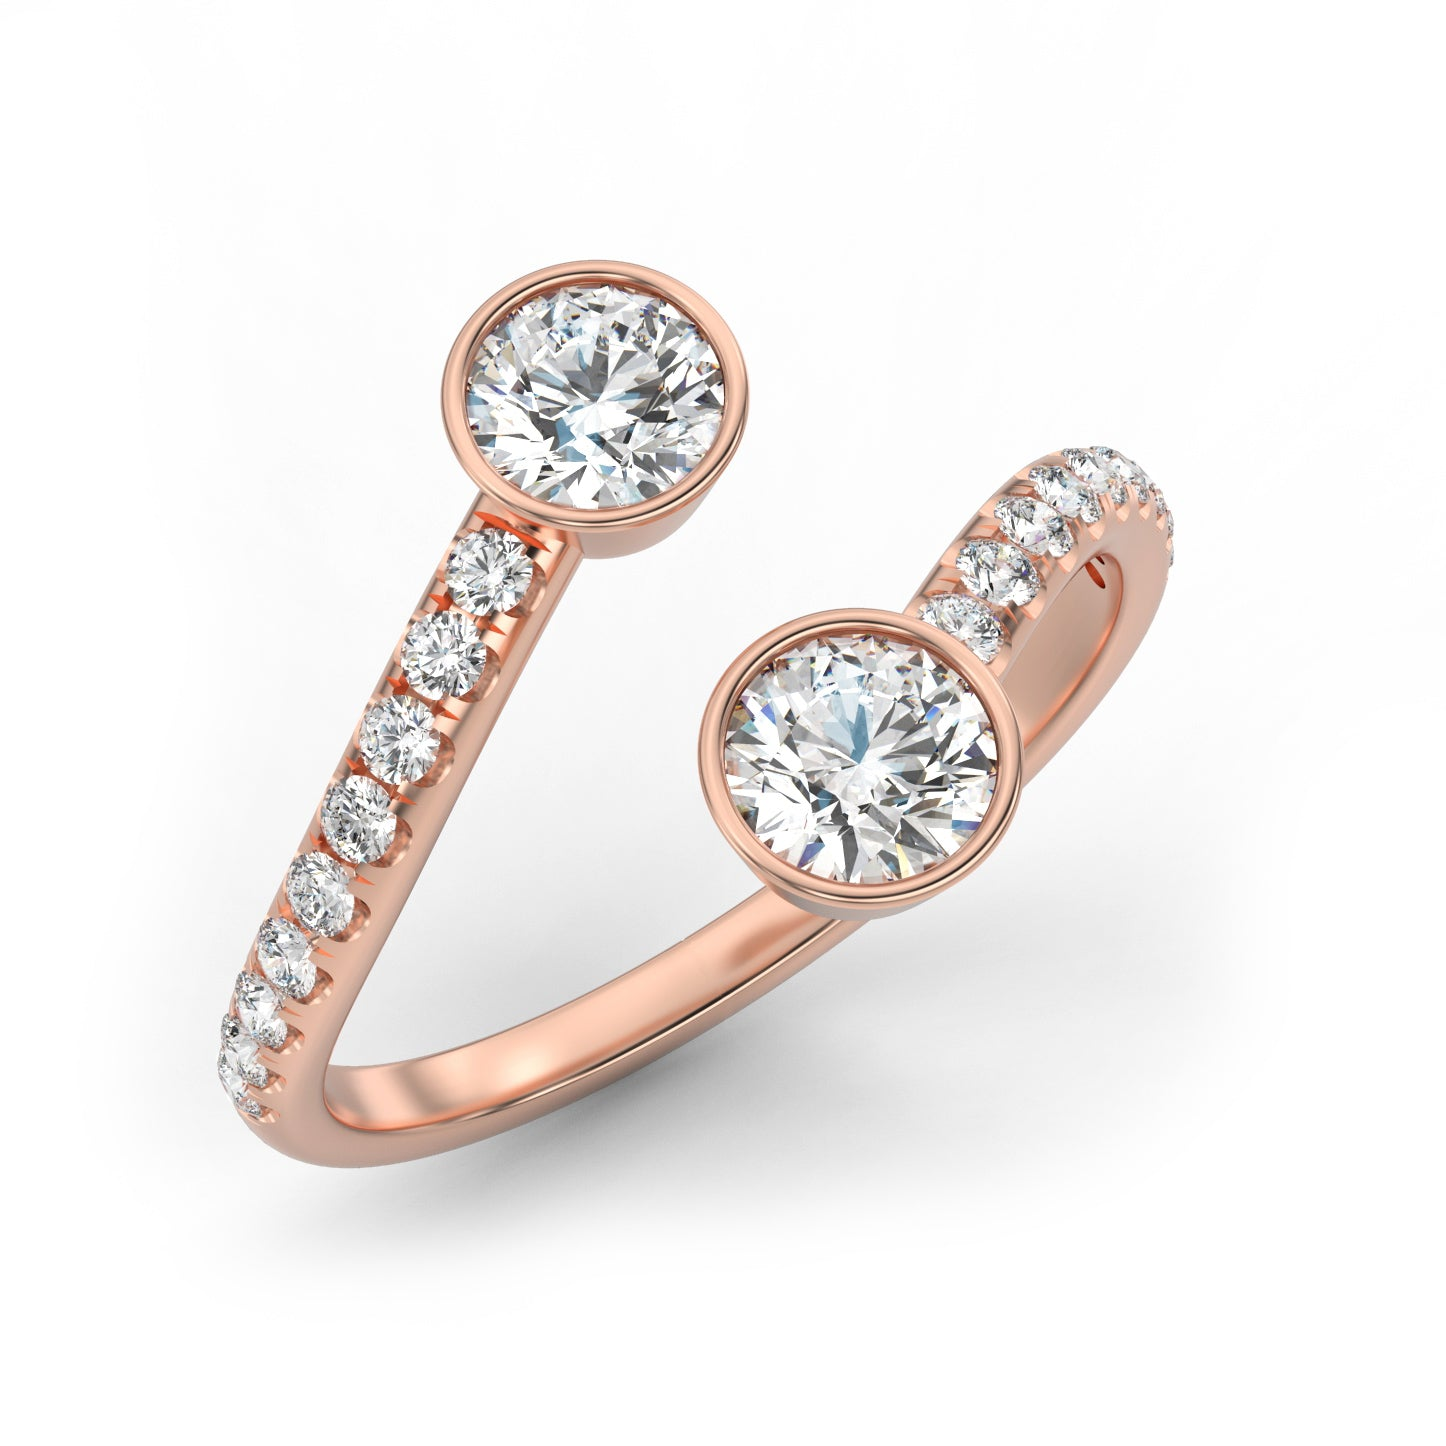 Details about  /Natural Diamond Swirl Bypass Ring Silver//Gold  Size 3-13